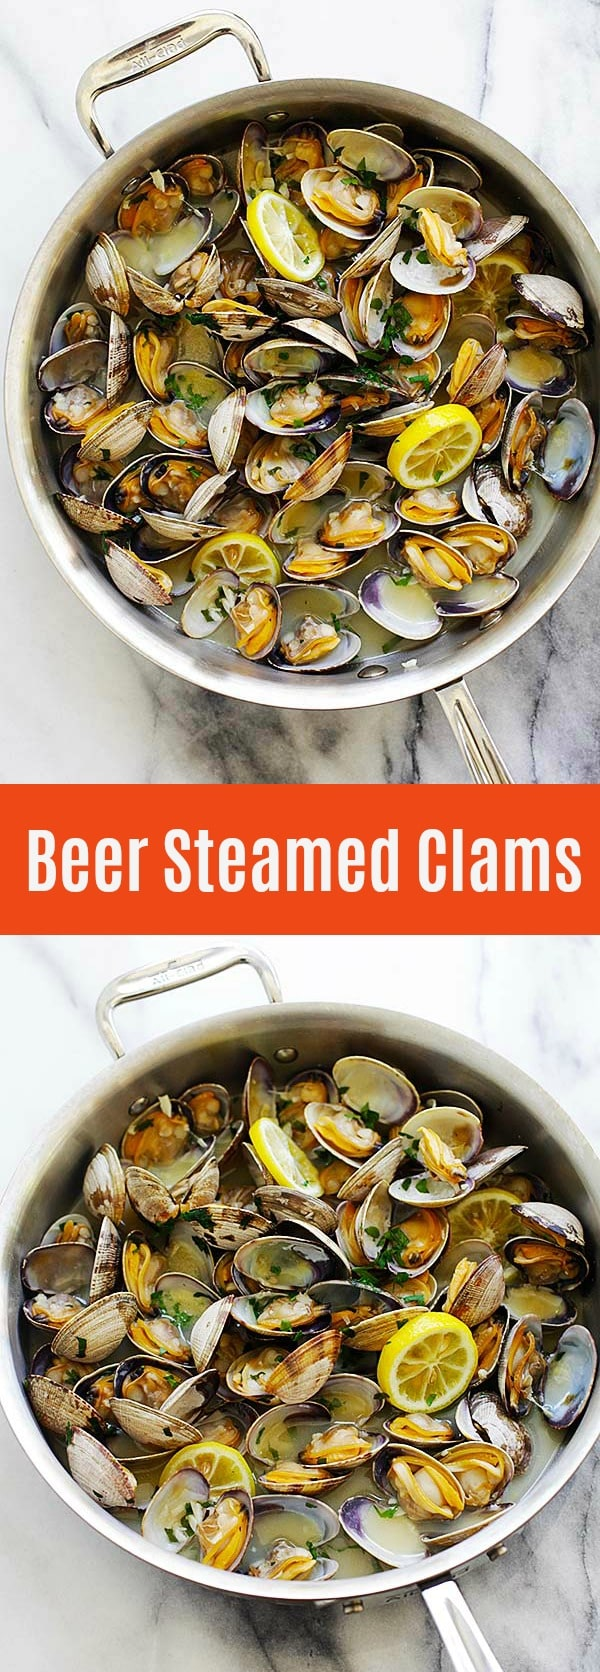 Beer Steamed Clams - the easiest steamed clams recipe ever with beer, garlic, parsley and lemon. Juicy, fat and succulent clams cooked in under 10 minutes | rasamalaysia.com